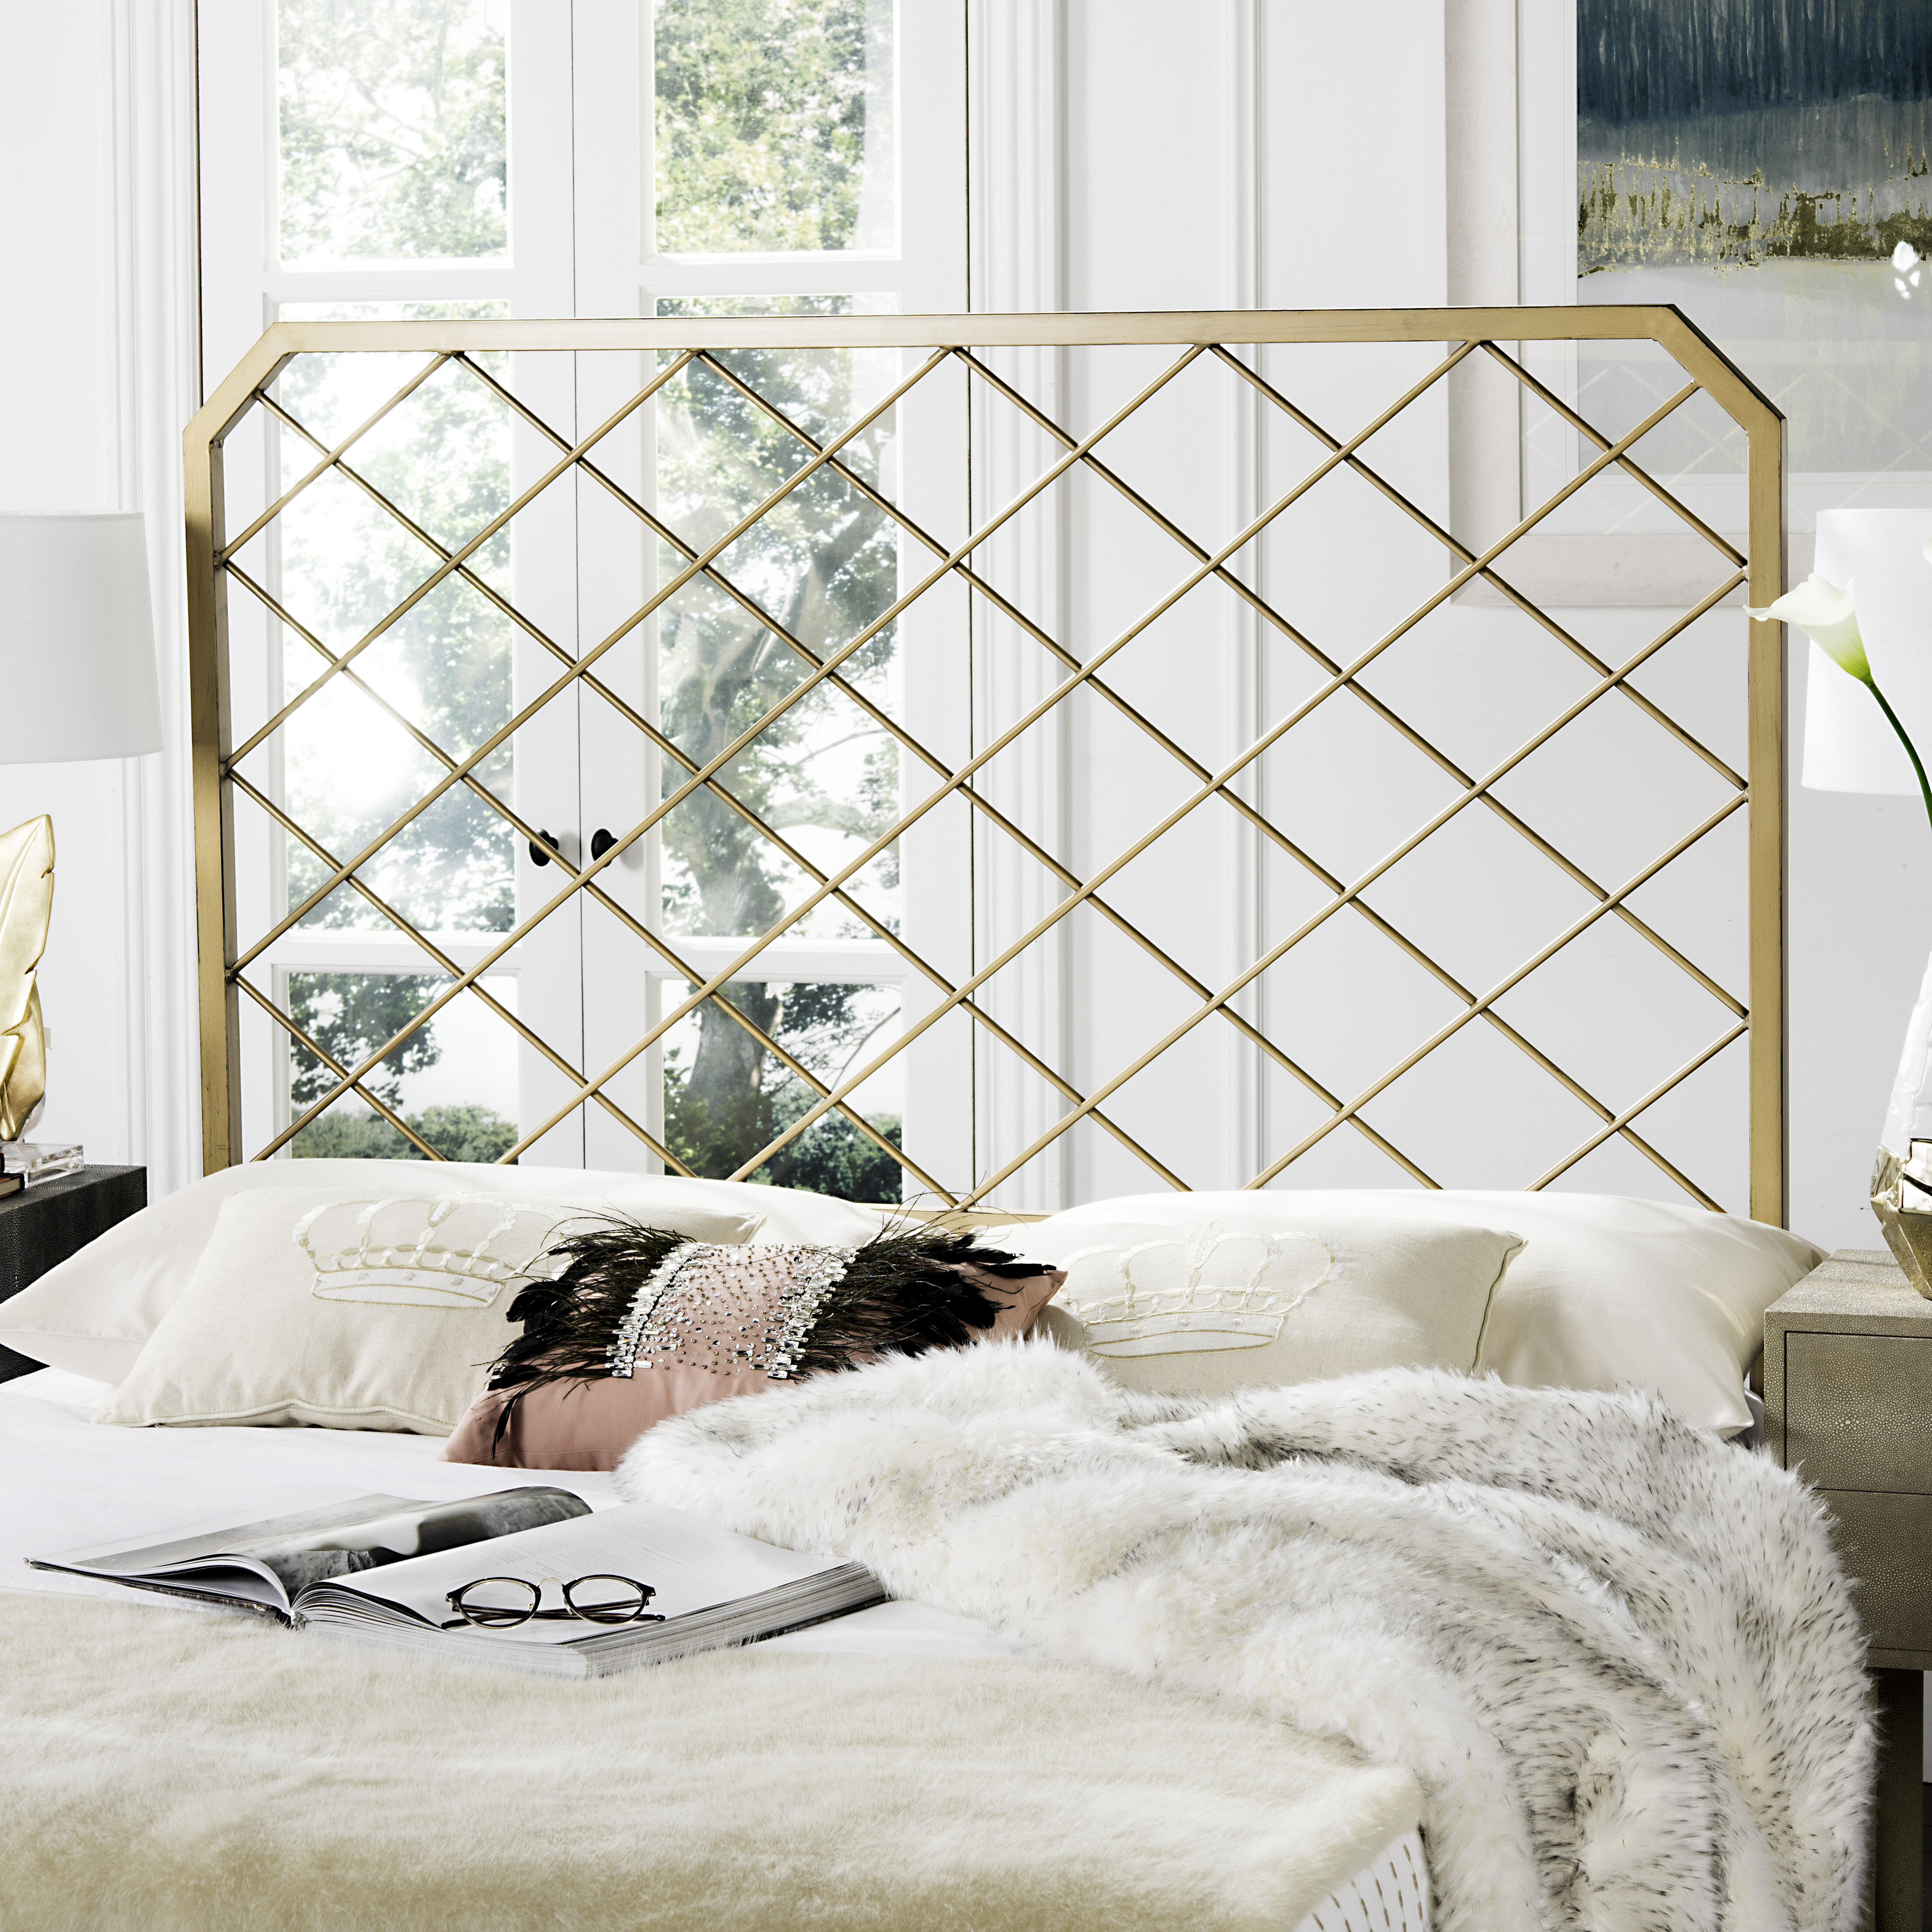 diy and best headboard bedheads affordable joss images upholstered pinterest on under helynwaddell the headboards main